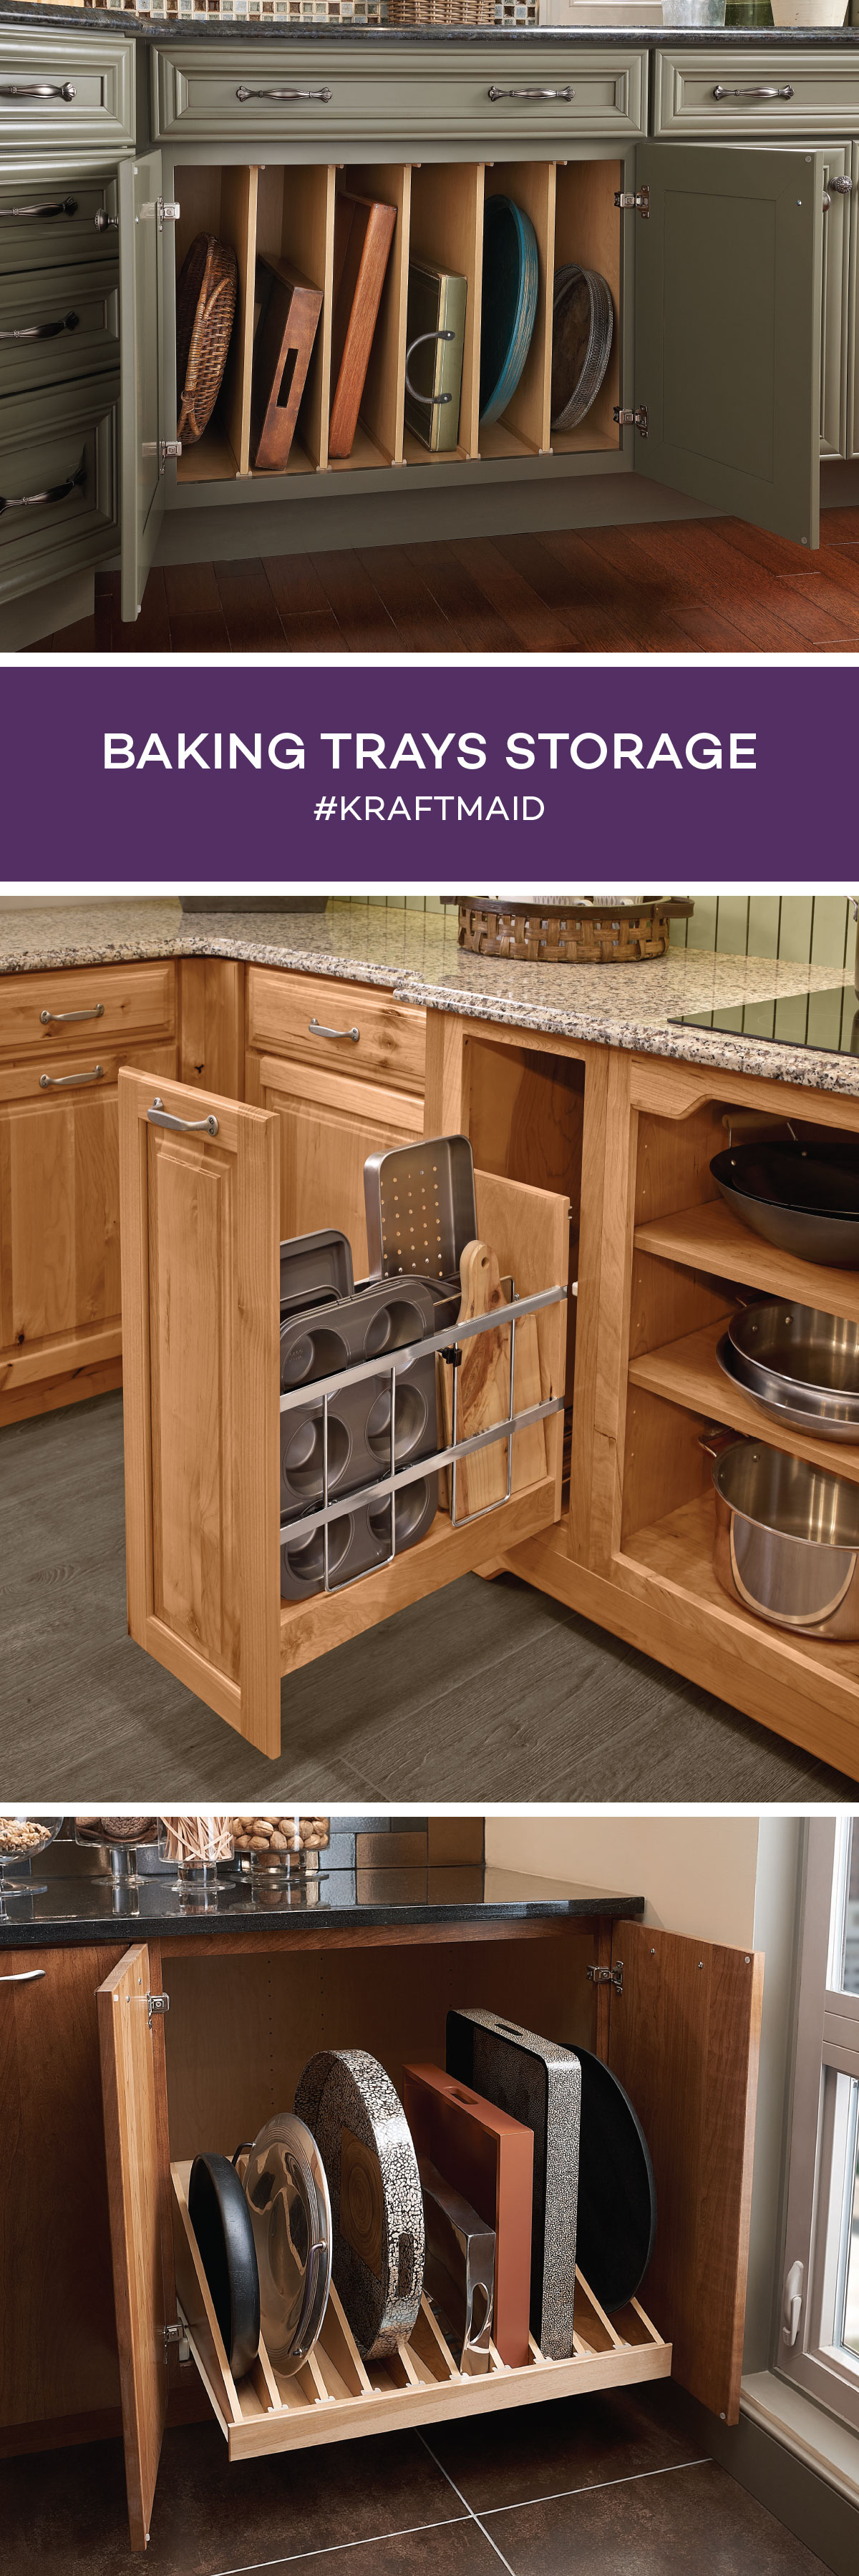 Cabinet Companies | Kraftmaid Outlet | Kitchen Cabinet Companies